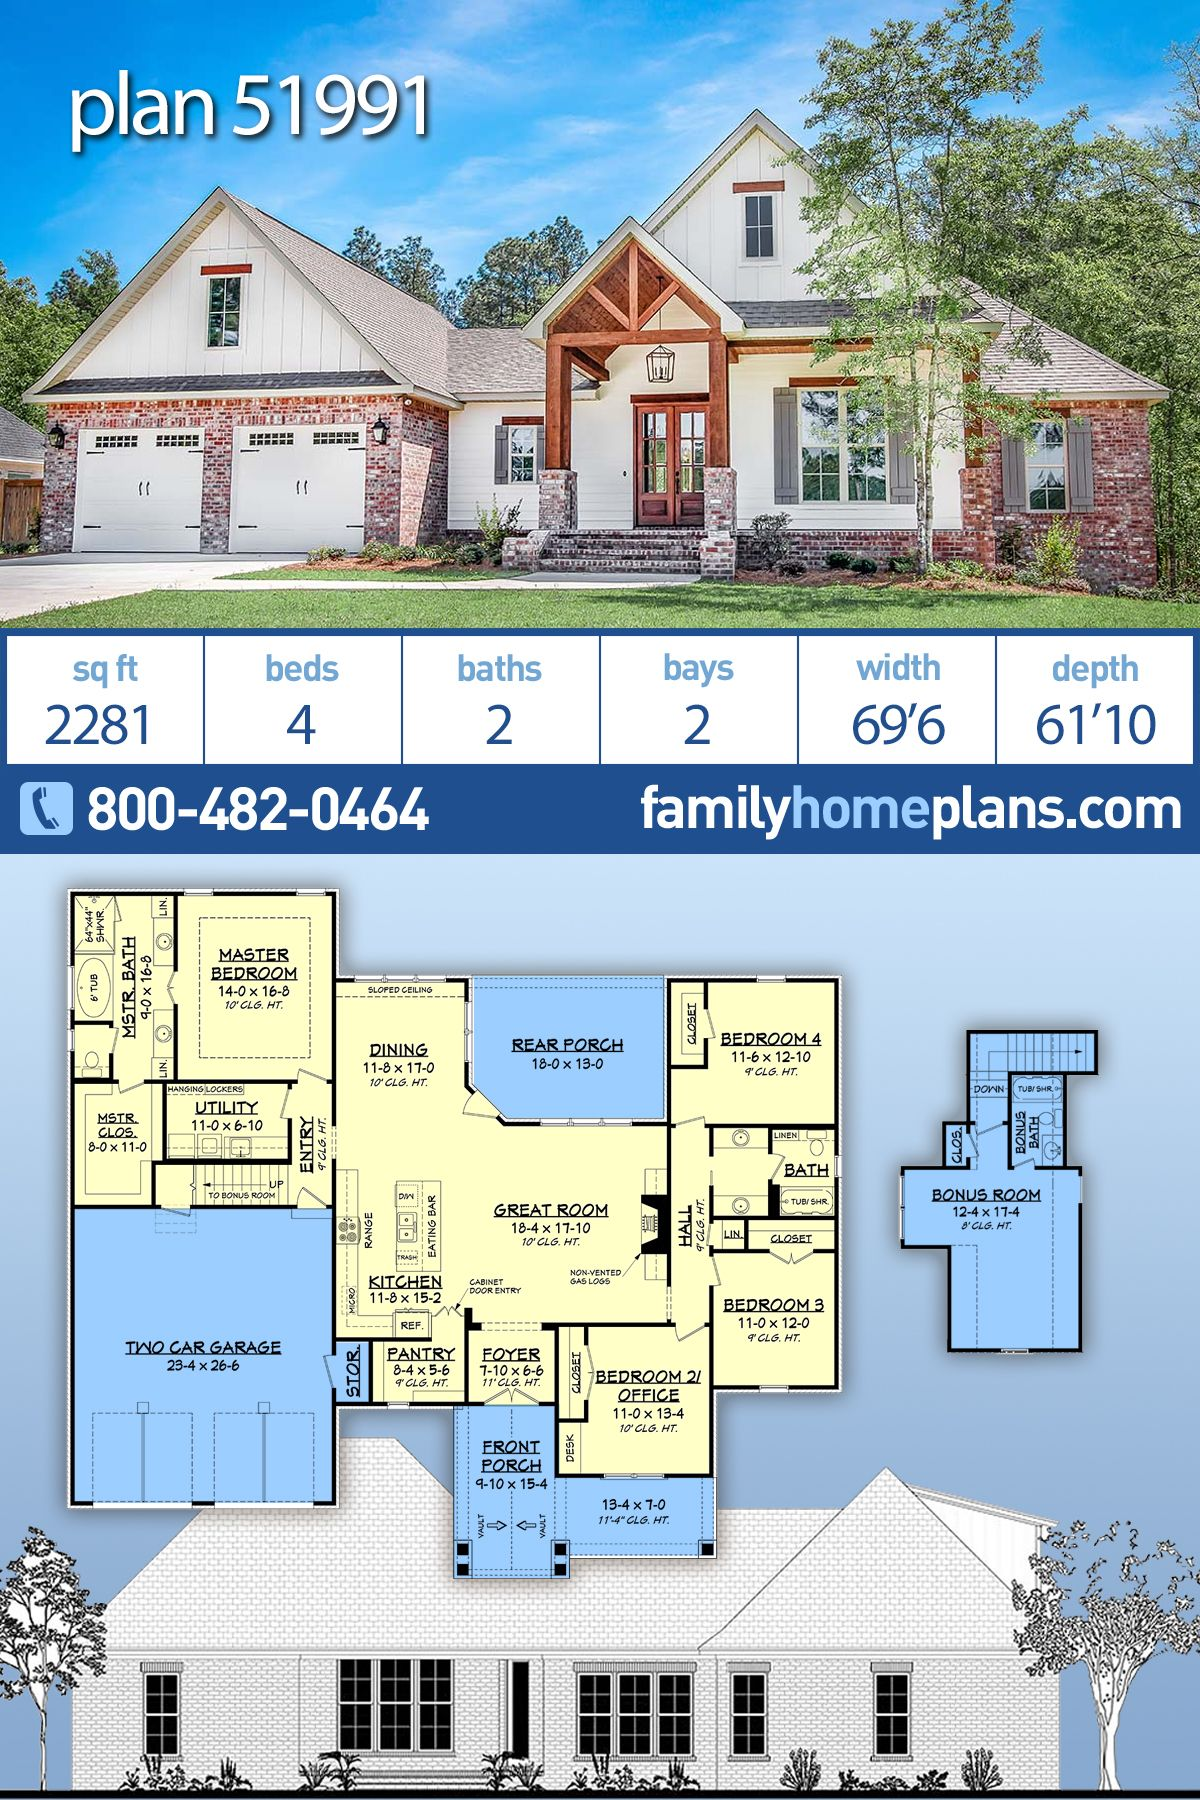 Traditional Style House Plan 51991 With 4 Bed 2 Bath 2 Car Garage New House Plans House Plans Farmhouse Dream House Plans